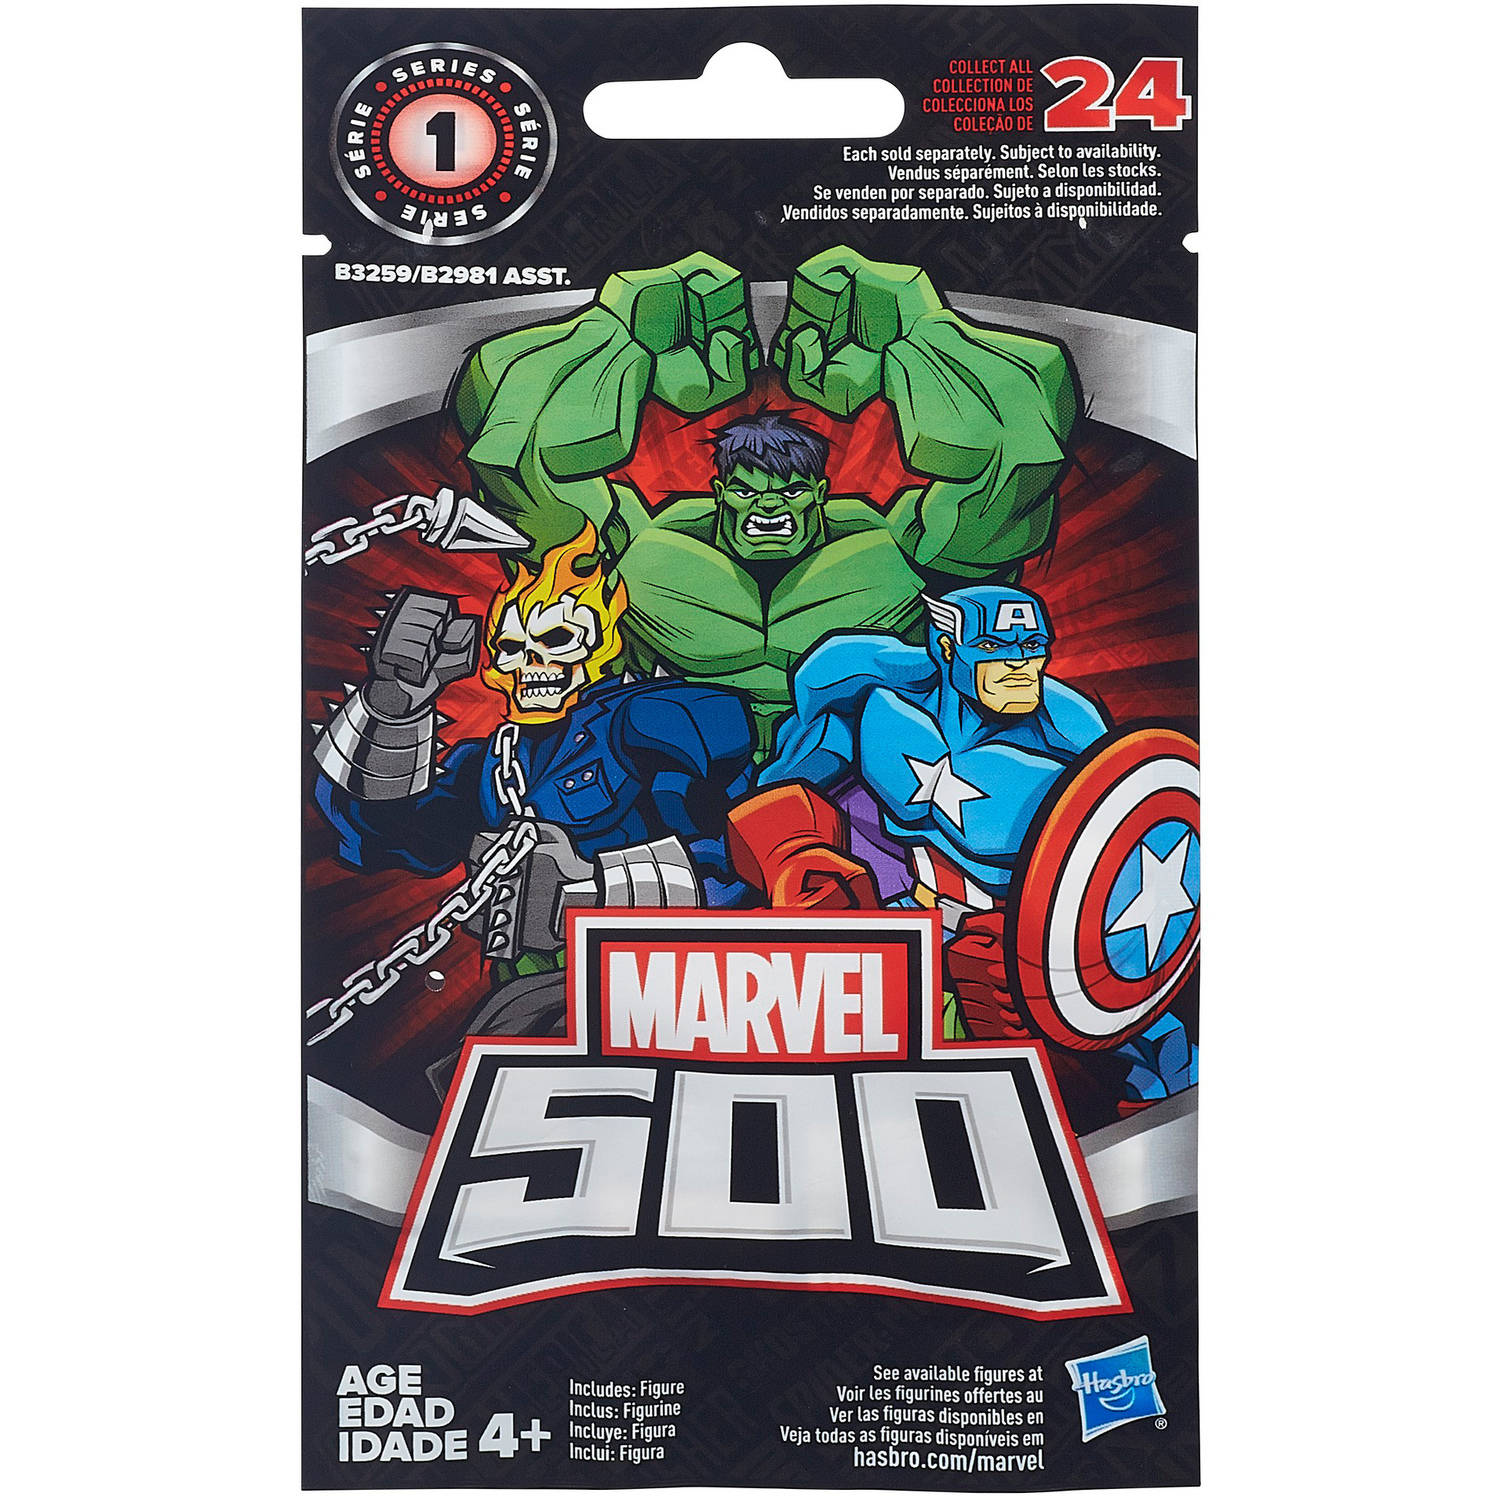 "Marvel 500 Series 1 Collectible 2"" Figure Pack"